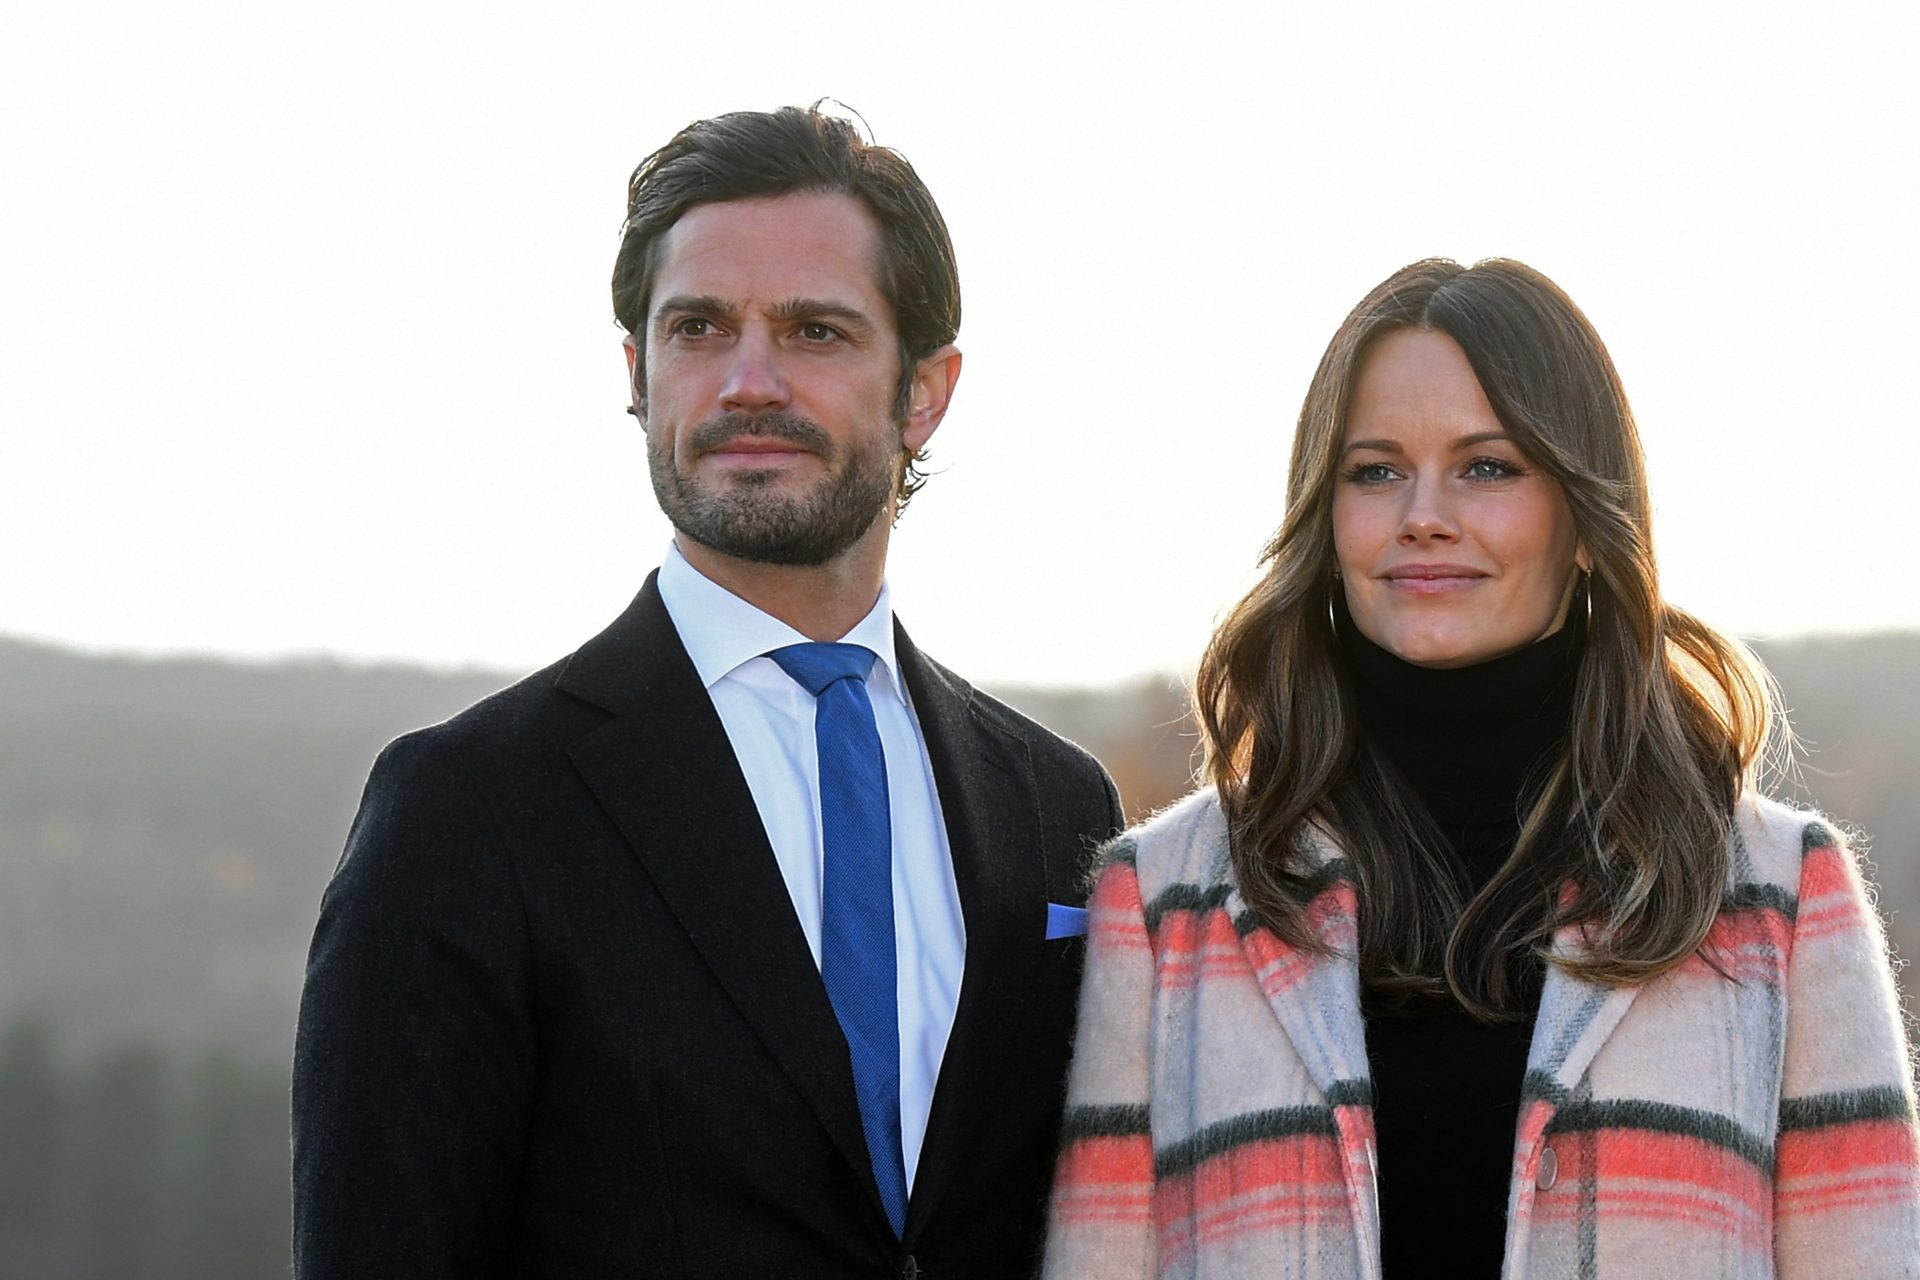 A new baby for the cutest prince and princess in Europe